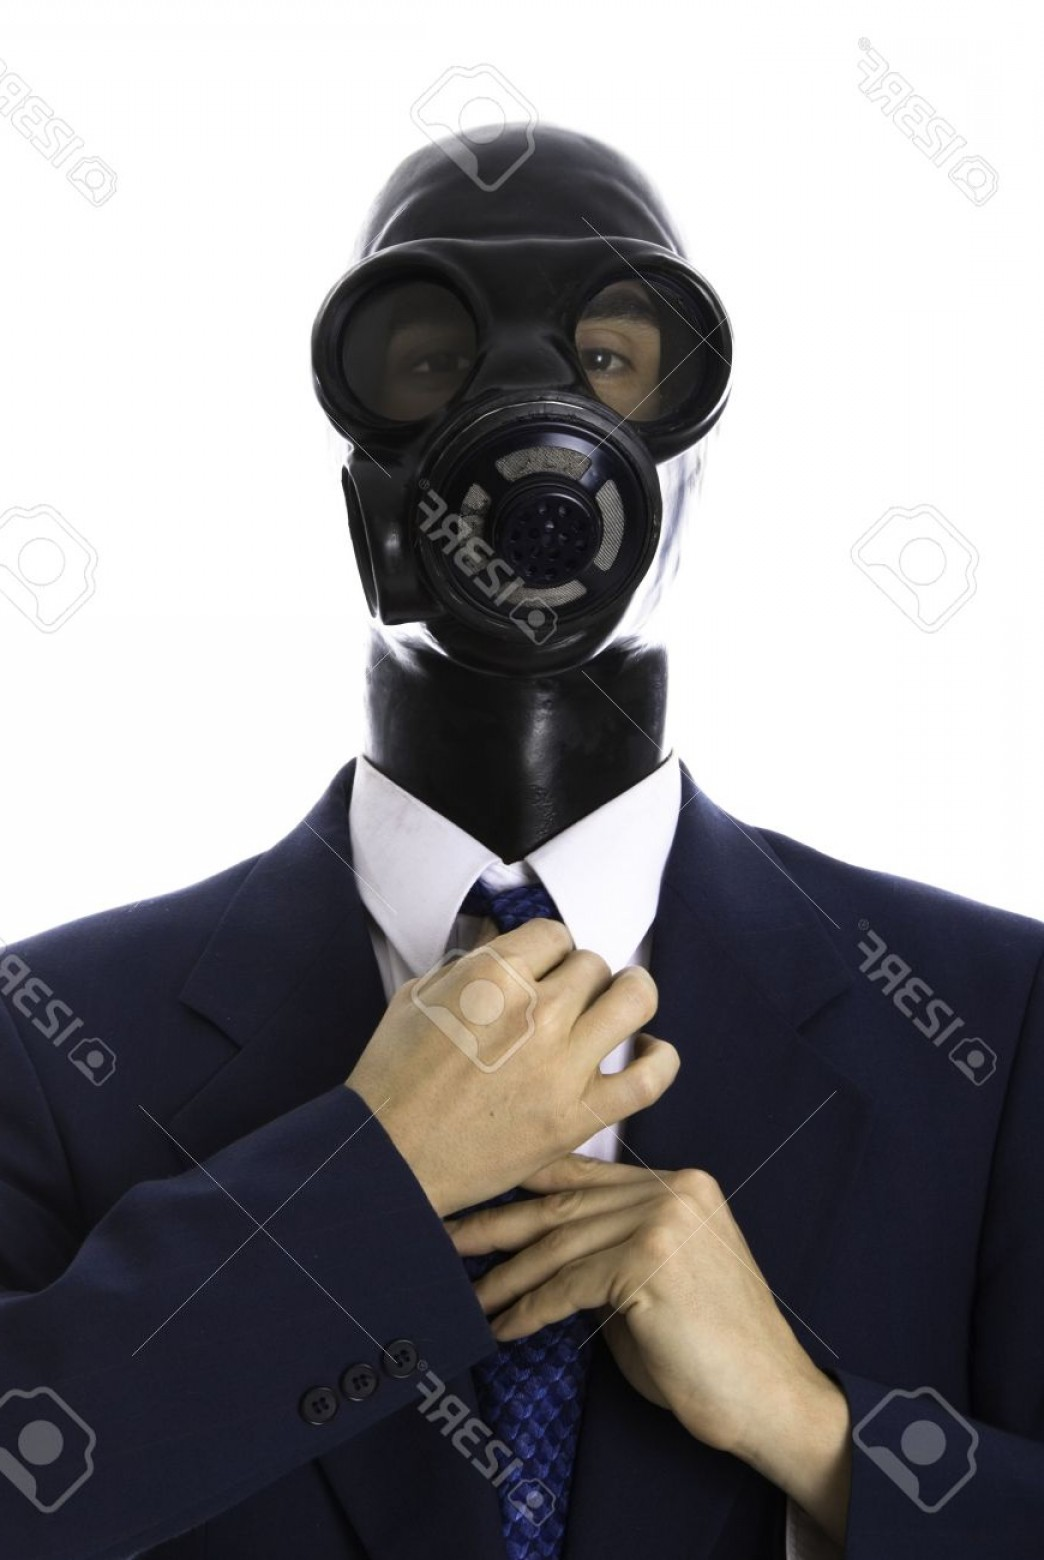 Gas Mask Suit And Tie Vector: Photoman In A Blue Suit With A Latex Mask Fixing His Tie